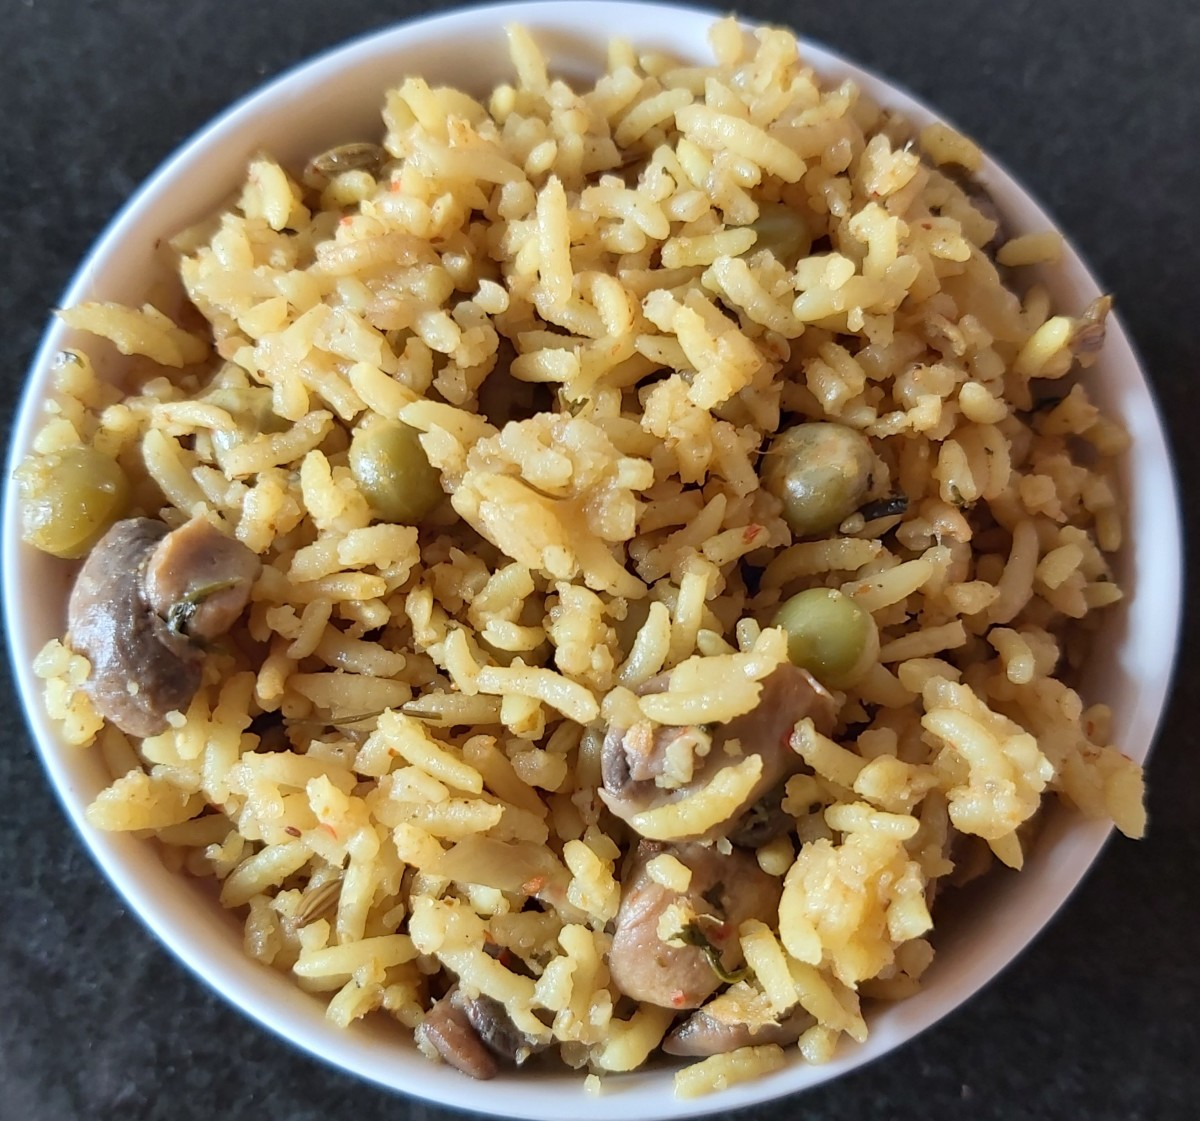 Mushroom and peas pulao is flavorful and mildly seasoned